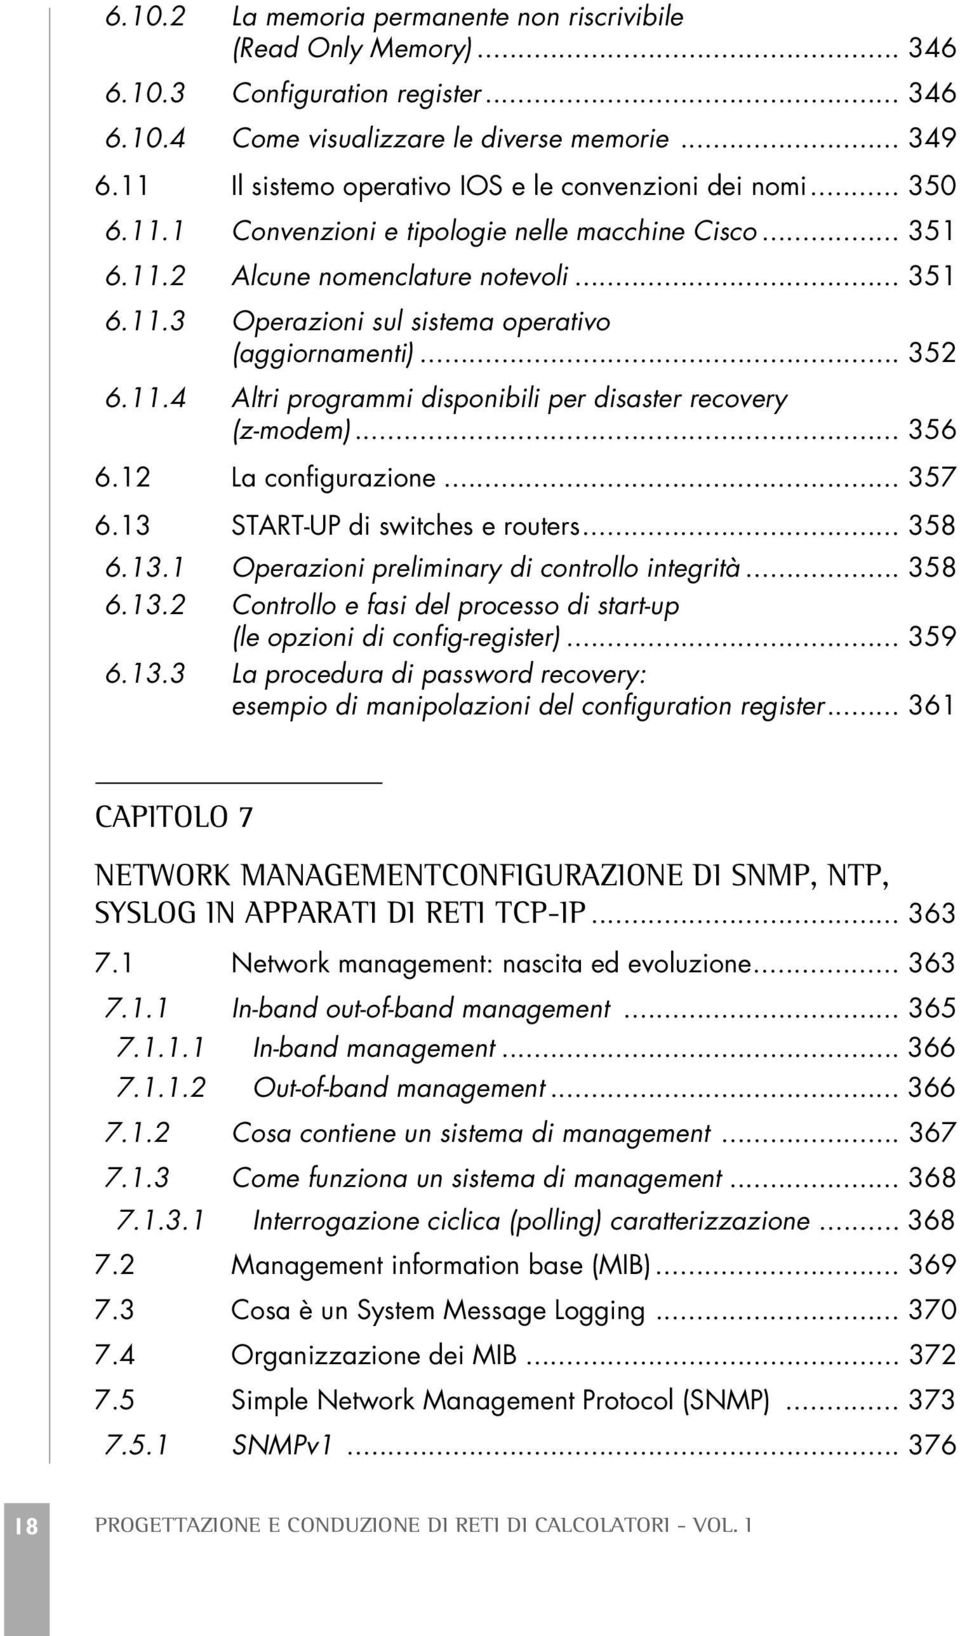 .. 352 6.11.4 Altri programmi disponibili per disaster recovery (z-modem)... 356 6.12 La configurazione... 357 6.13 START-UP di switches e routers... 358 6.13.1 Operazioni preliminary di controllo integrità.